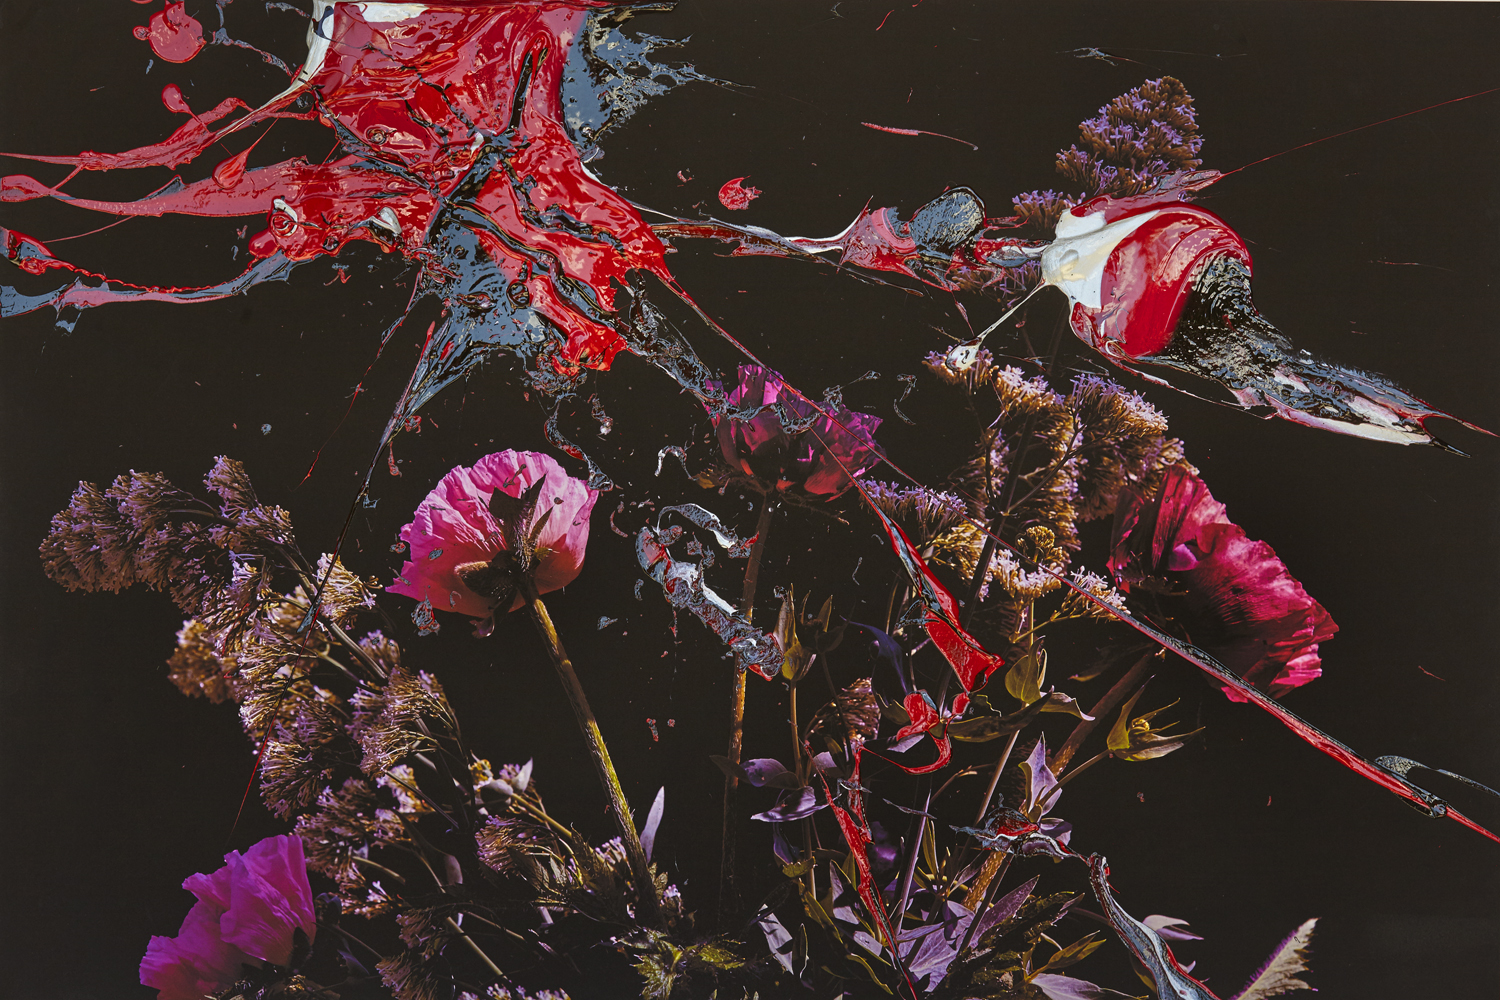 #peterwesth-Peter Westh-@peterwesth-flowers-fineart-poppy-abstract-painting-photography-popart